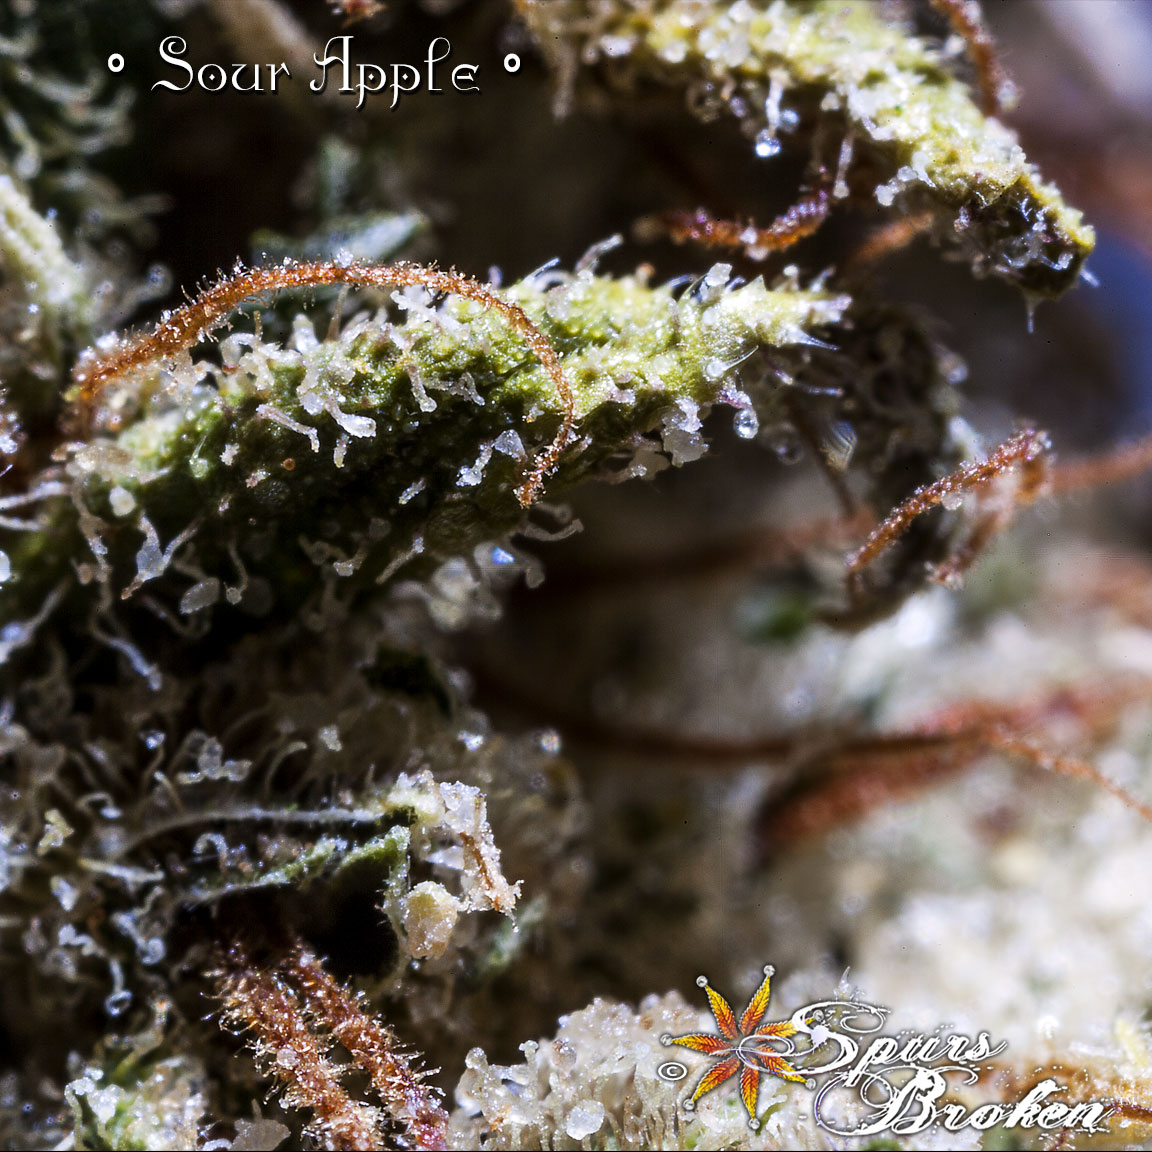 Sour Apple - Cannabis Macro Photography by Spurs Broken (Robert R. Sanders)